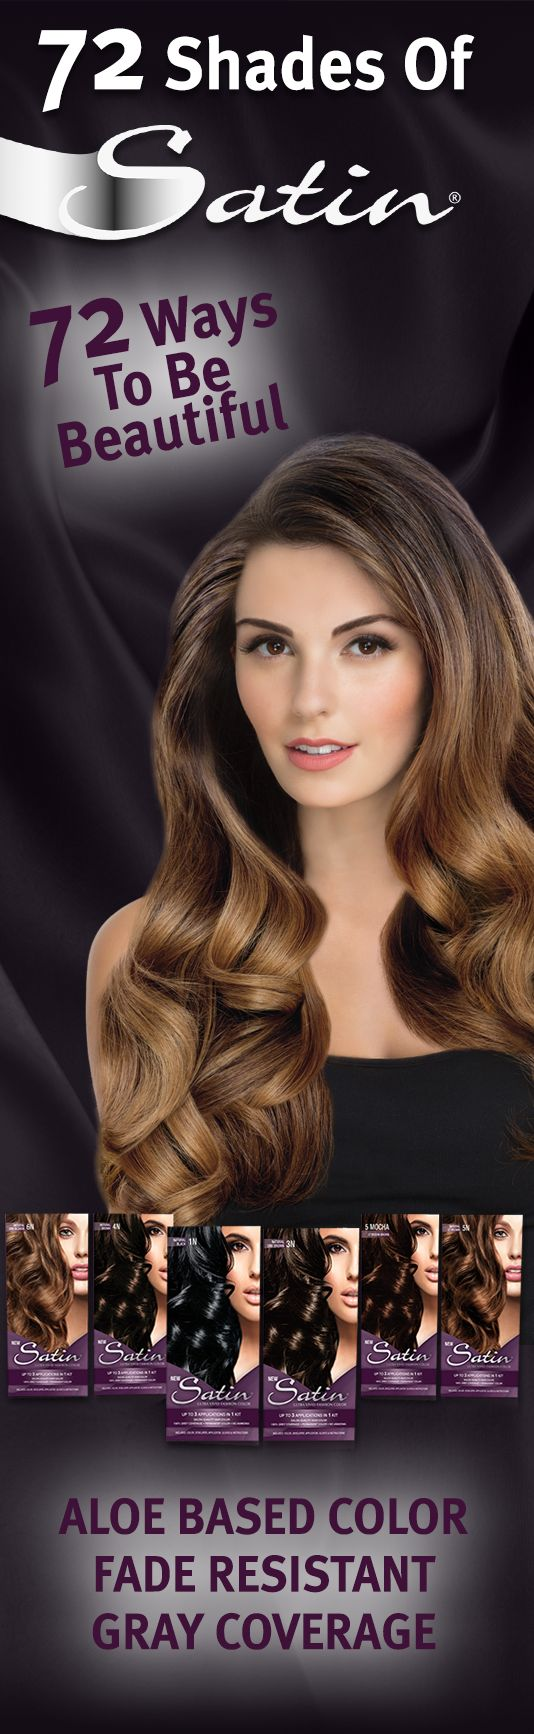 best hair color images on pinterest hair ideas hair color and